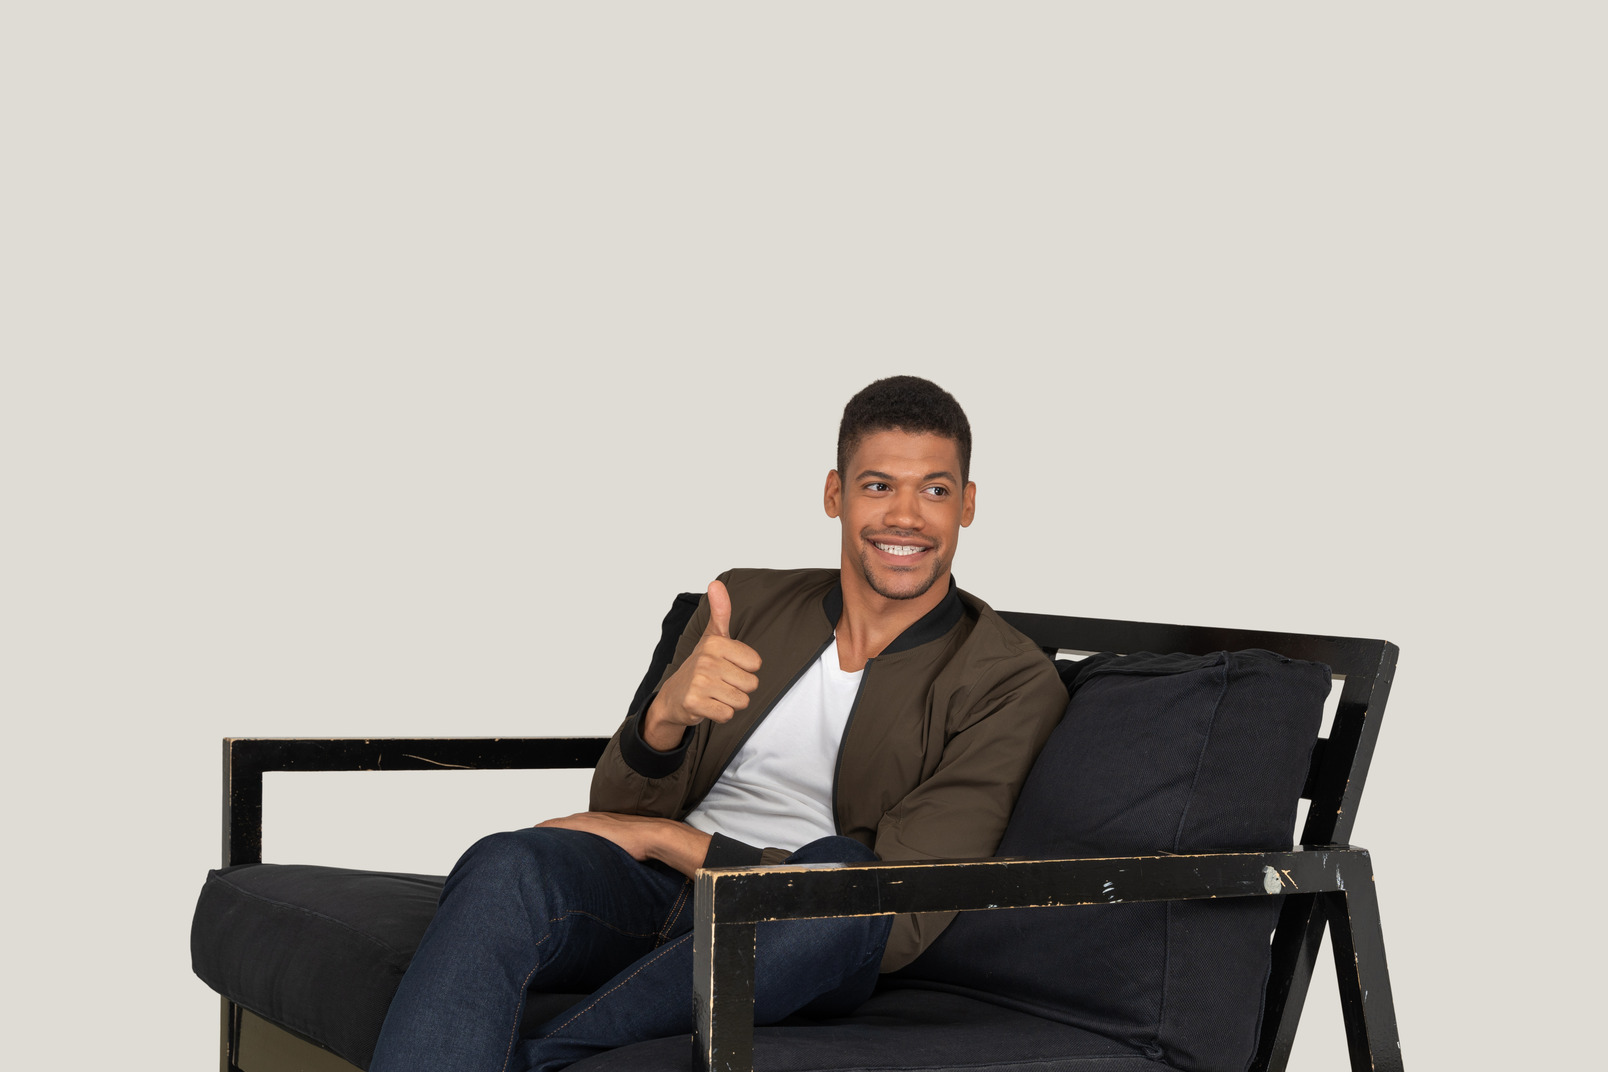 Smiling young man sitting on the sofa and showing thumb up